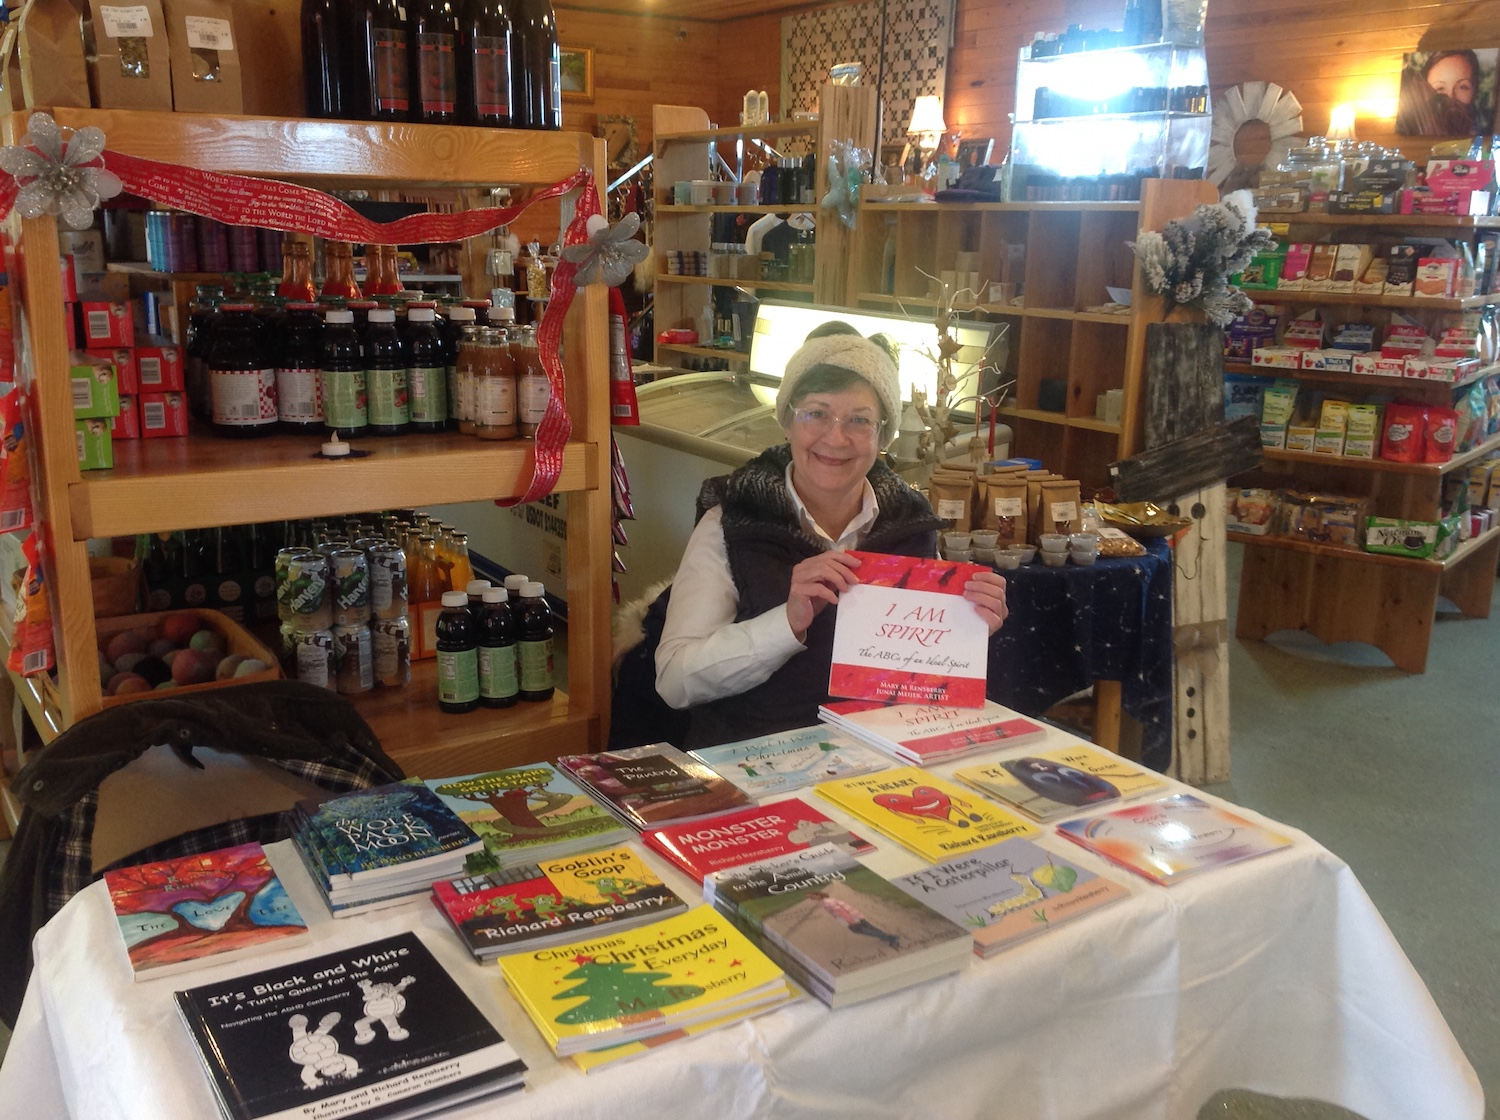 Books Make Booms brand building book table manned by author and illustrator Mary Rensberry.